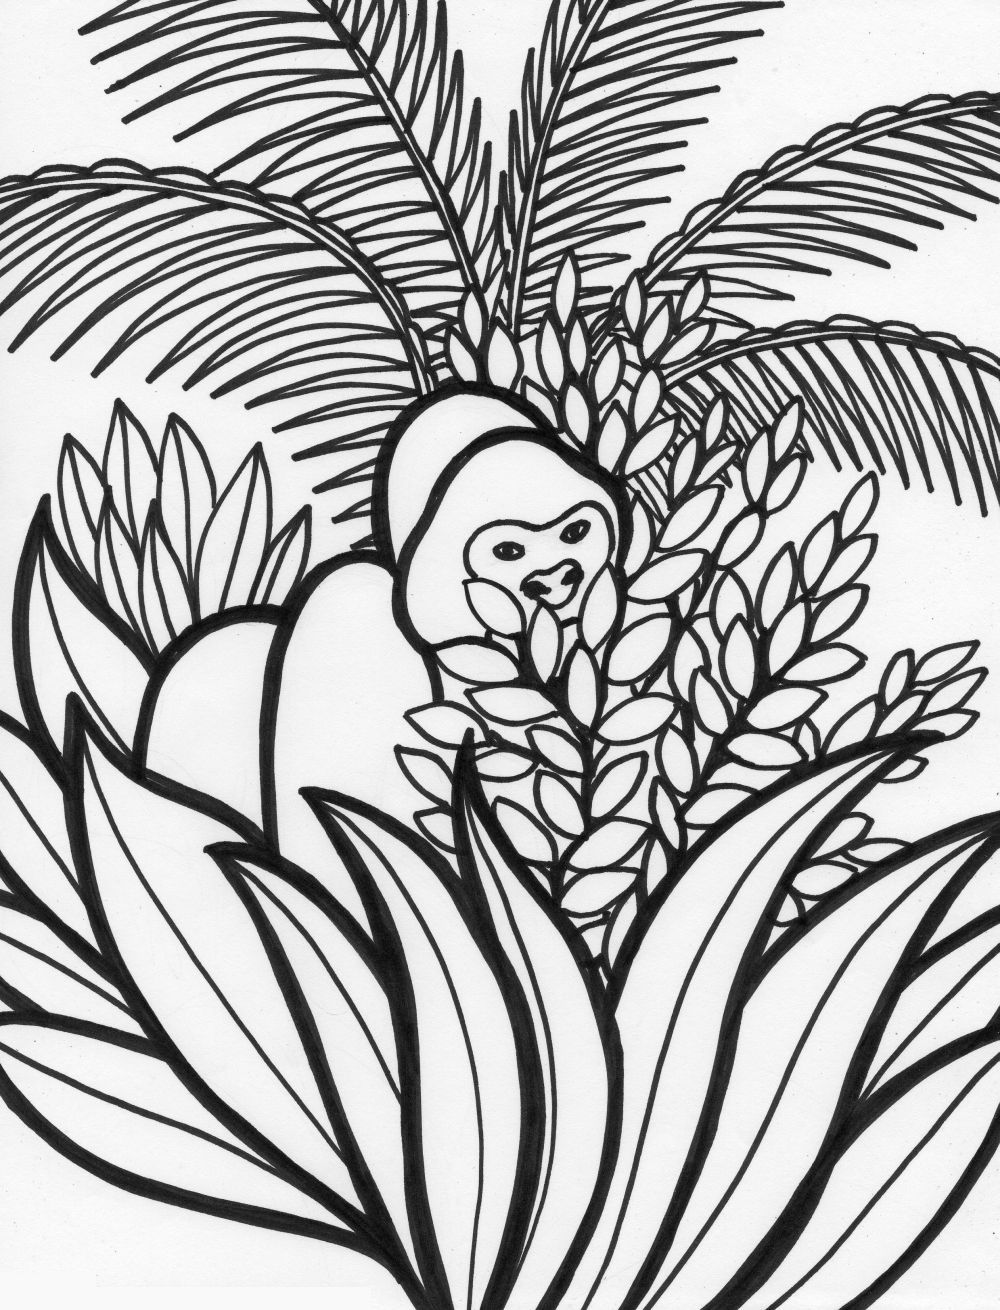 Free printable coloring pages rainforest - Jungle Animal Coloring Pages Ace Coloring Design